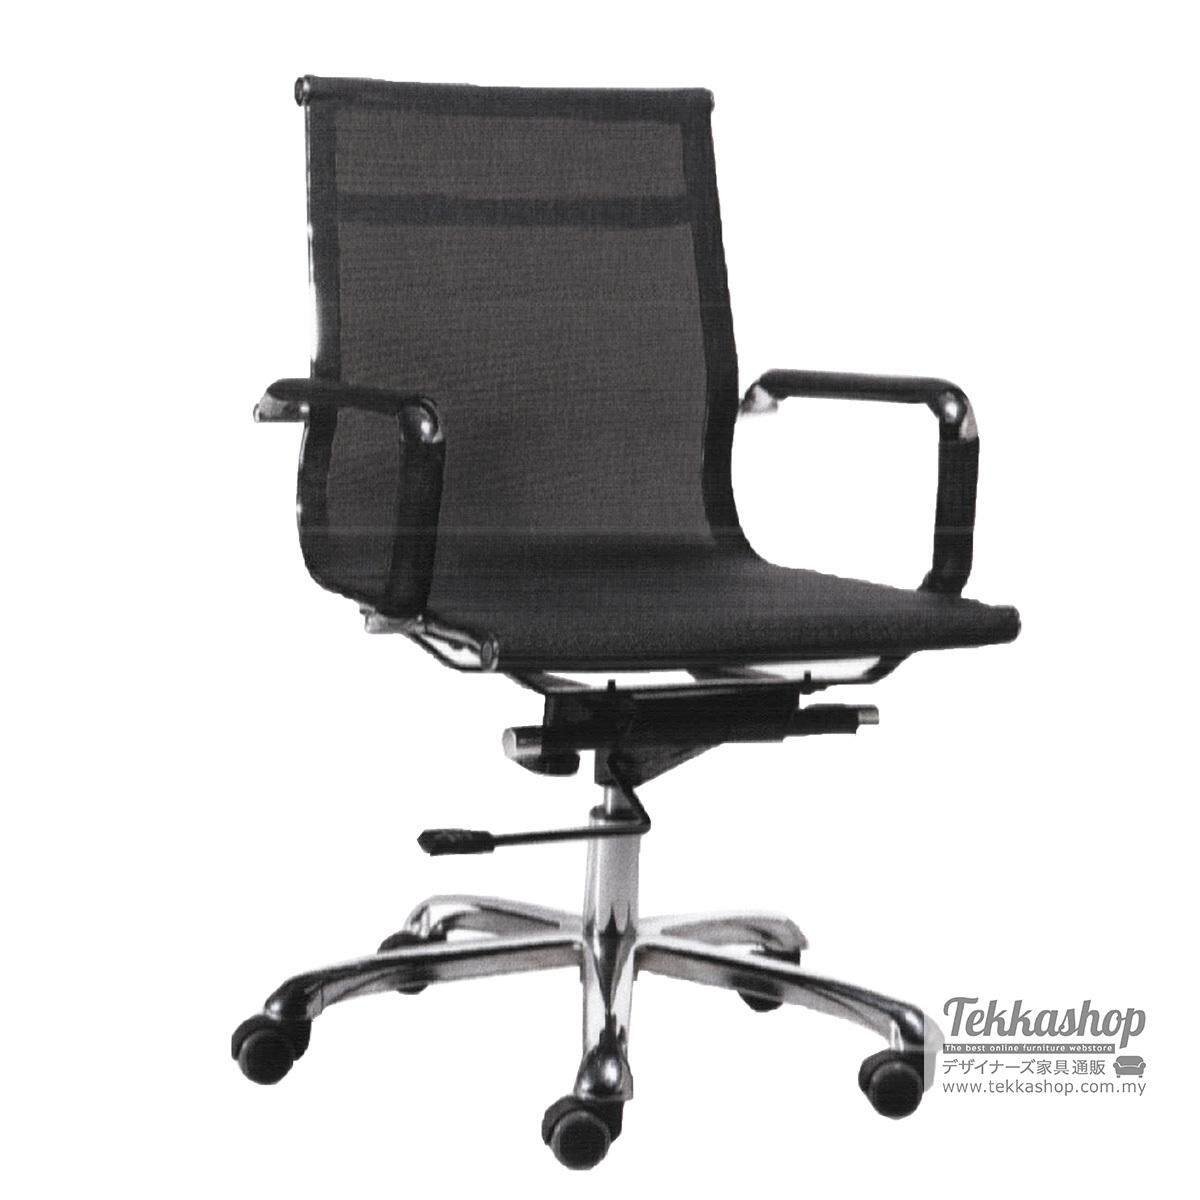 comfortable home office. Tekkashop KKMJC0Y Adjustable Seat Height Ergonomic Swivel Mesh Comfortable Home Office Chair, Low Back A